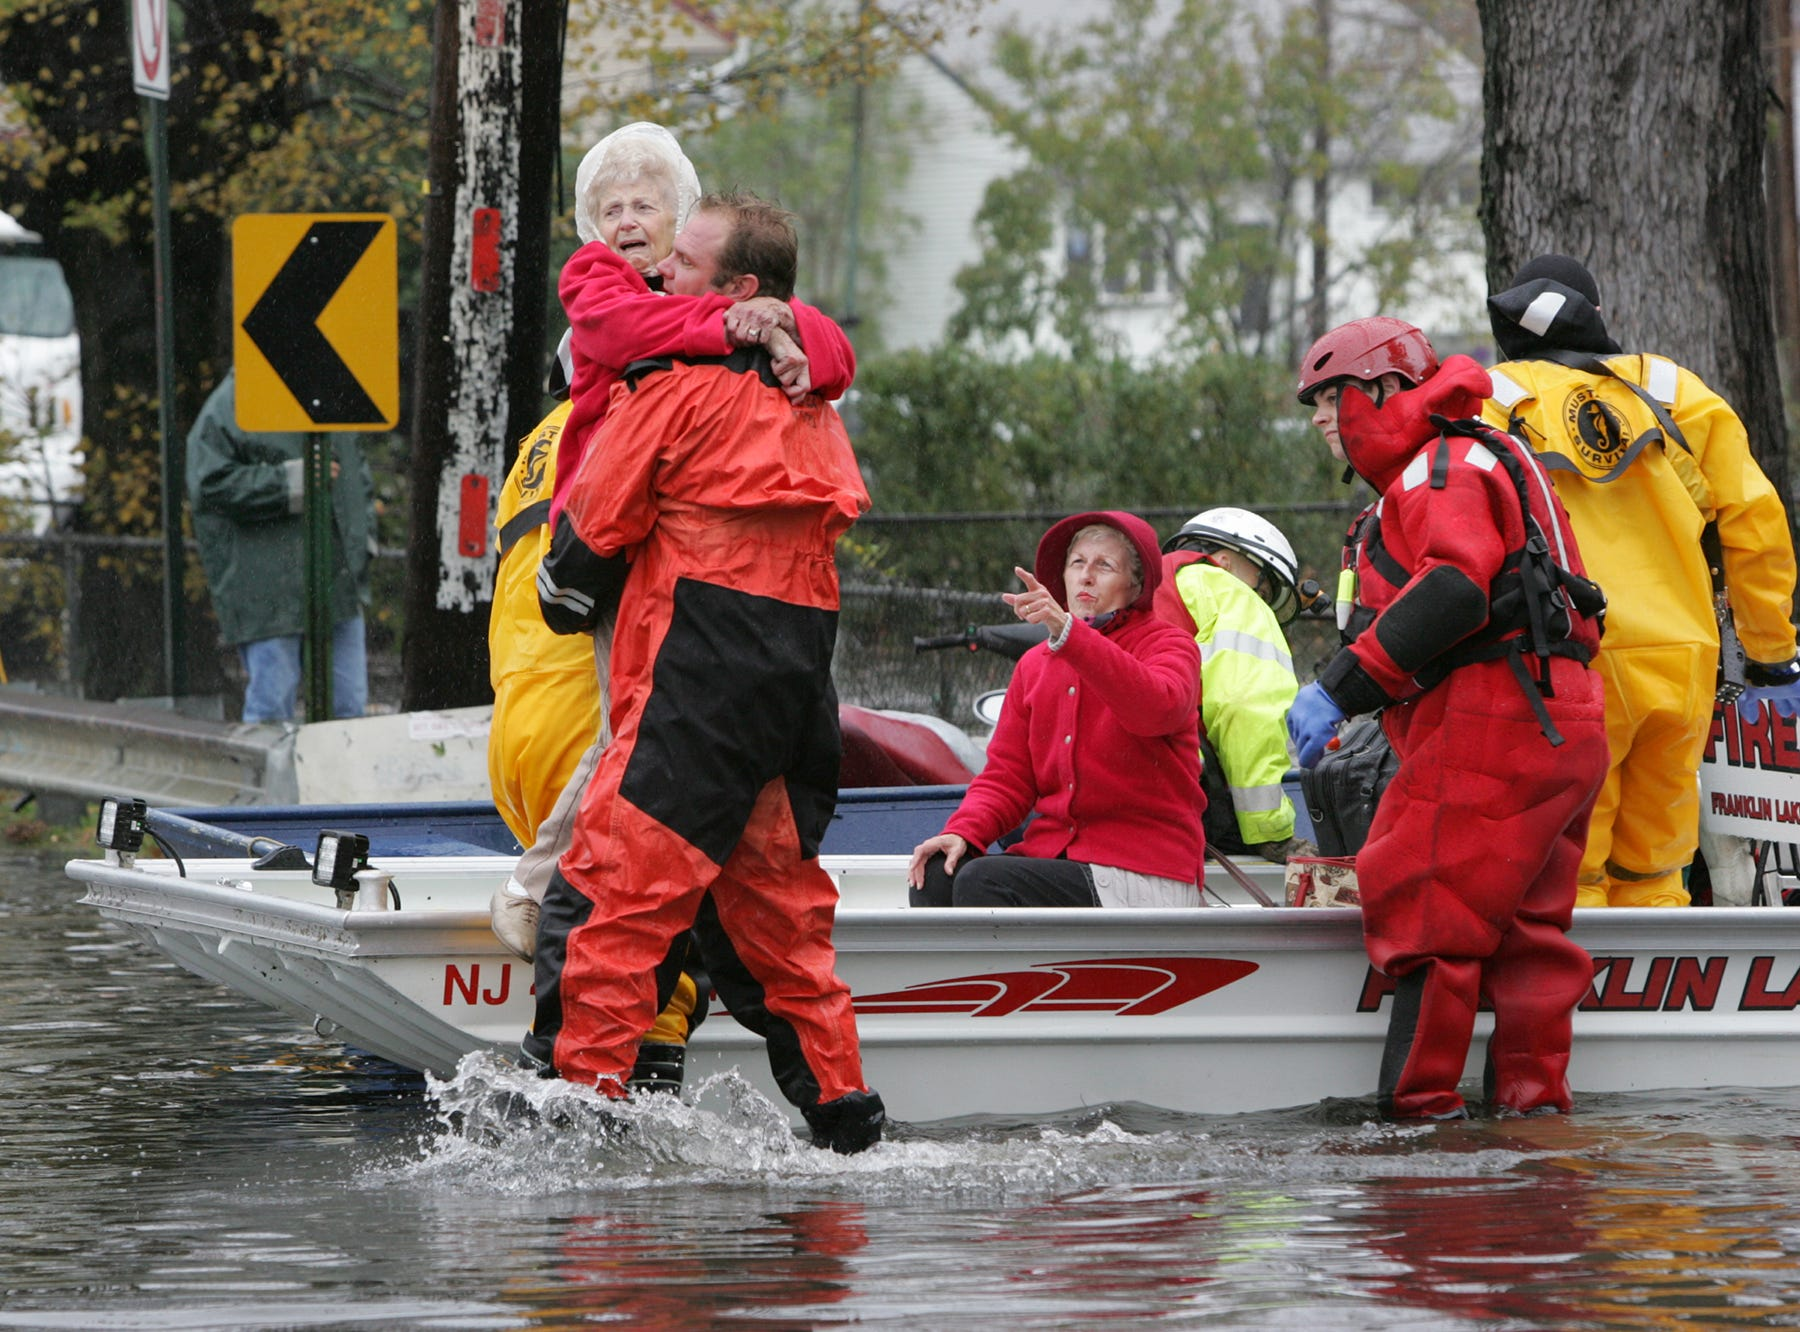 A rescue worker carries an elderly woman to dry ground after rescuing her from her Little Ferry home on Oct. 30, 2012.